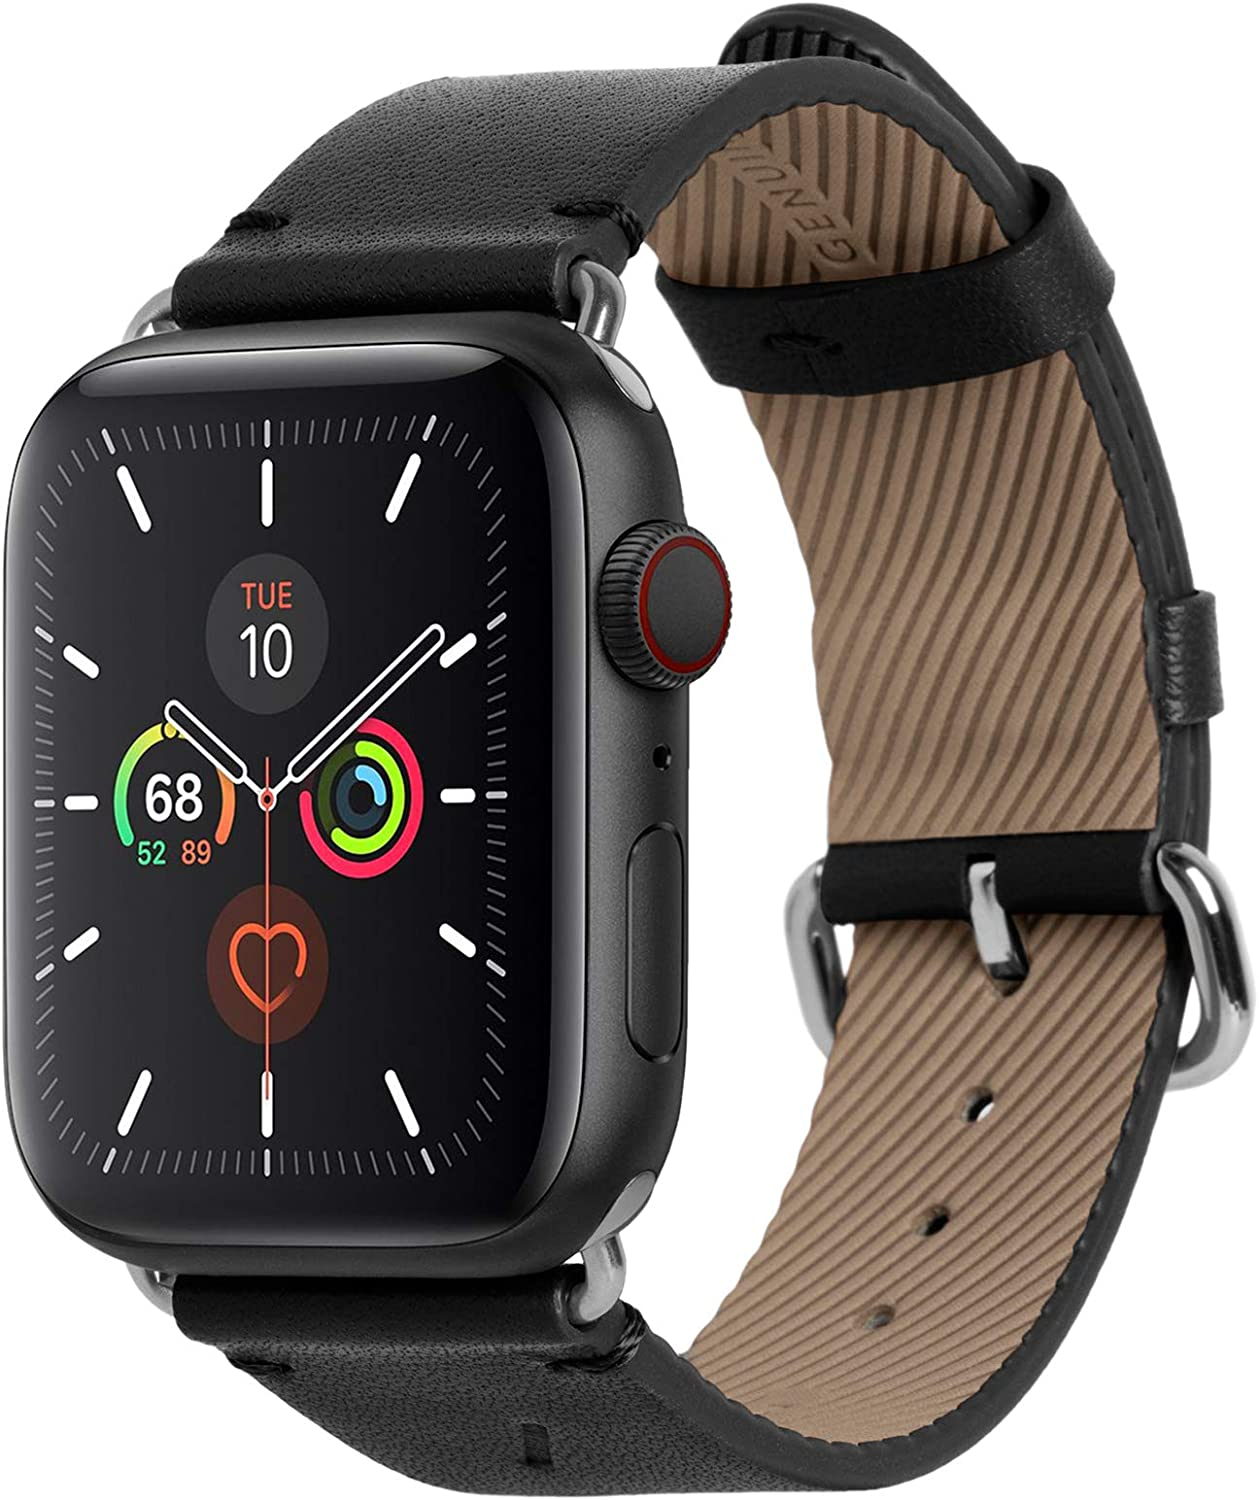 Native Union Classic Strap for Apple Watch 42/44mm – Genuine Italian Nappa Leather – Stainless Steel Hardware with Soft Nubuck Leather Backing (Black)